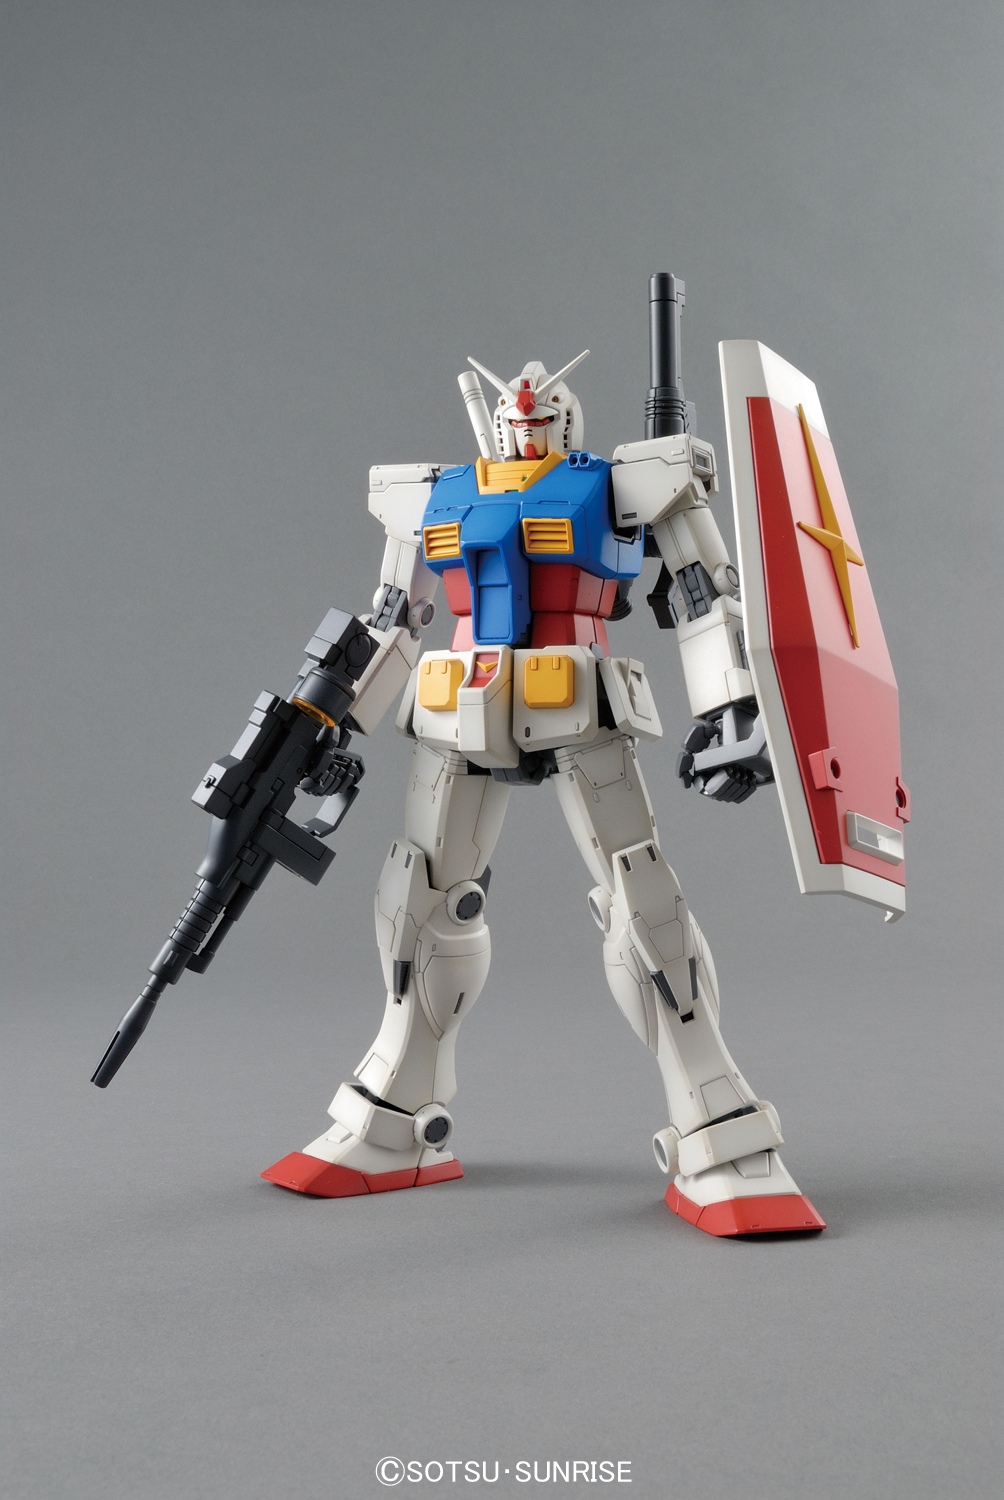 59736MG 1/100 RX-78-02 ガンダム(THE ORIGIN版) [Gundam The Origin]